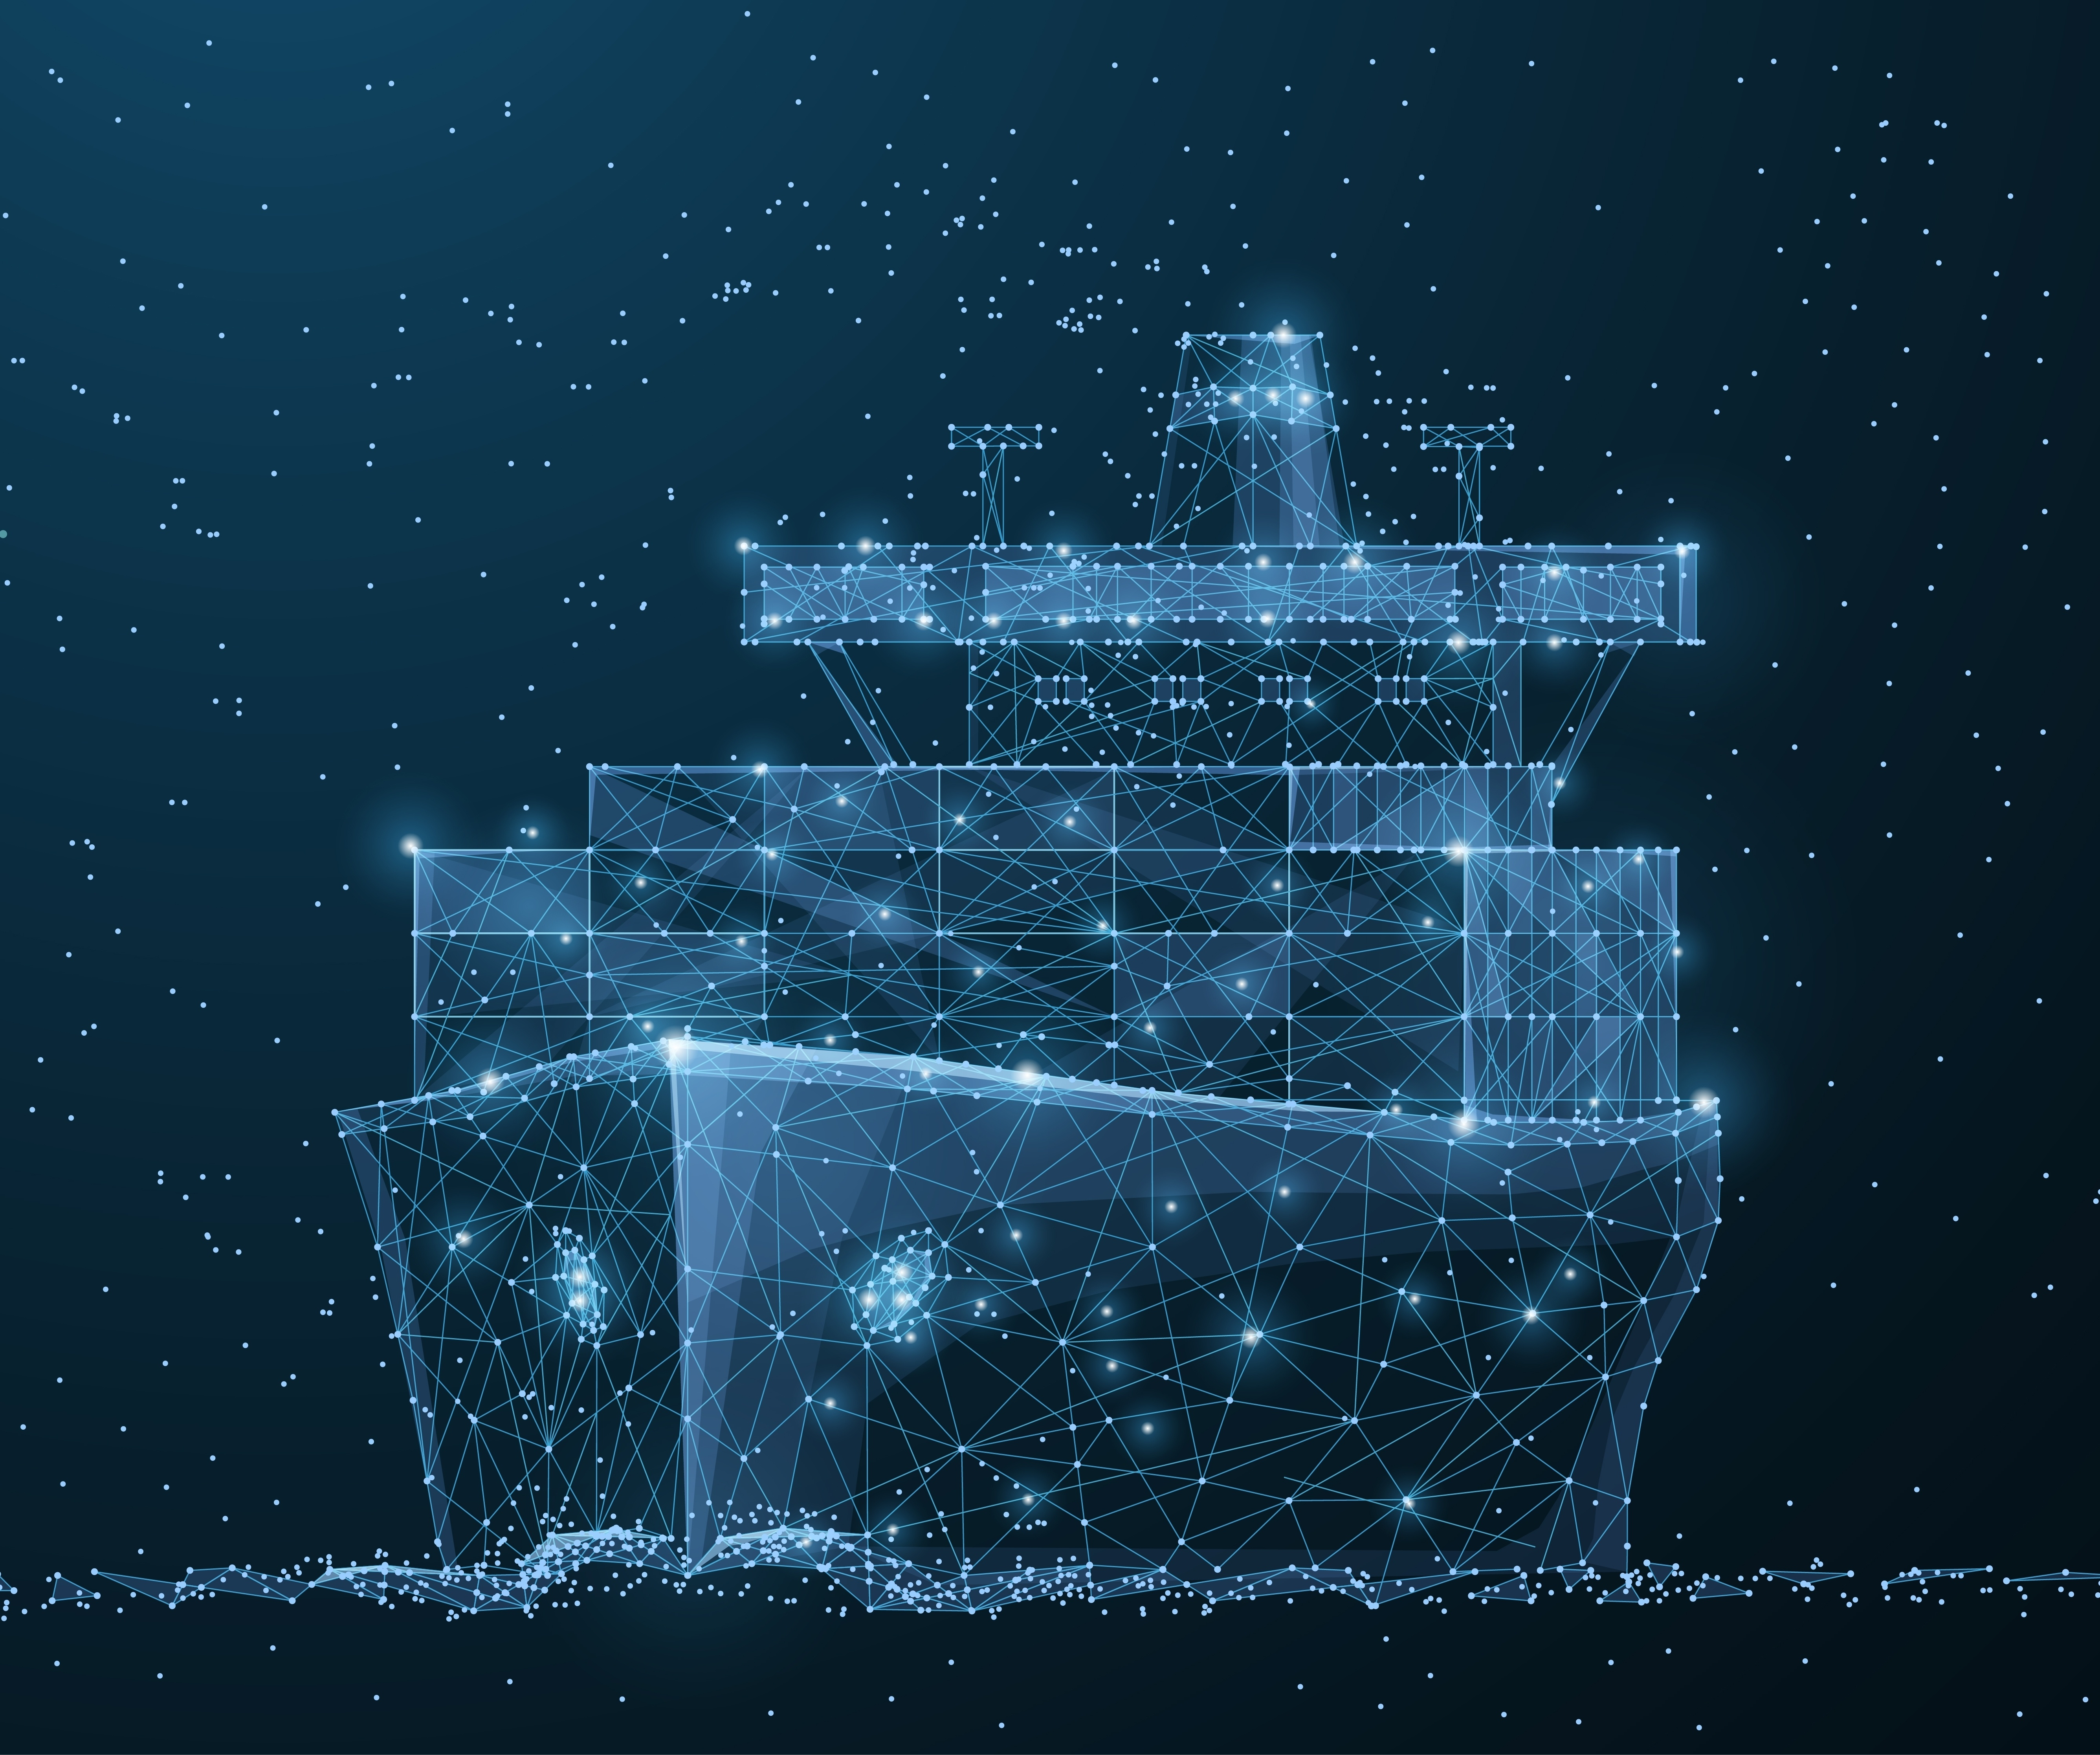 Cyber Incident Exposes Potential Vulnerabilities Onboard Commercial Vessels